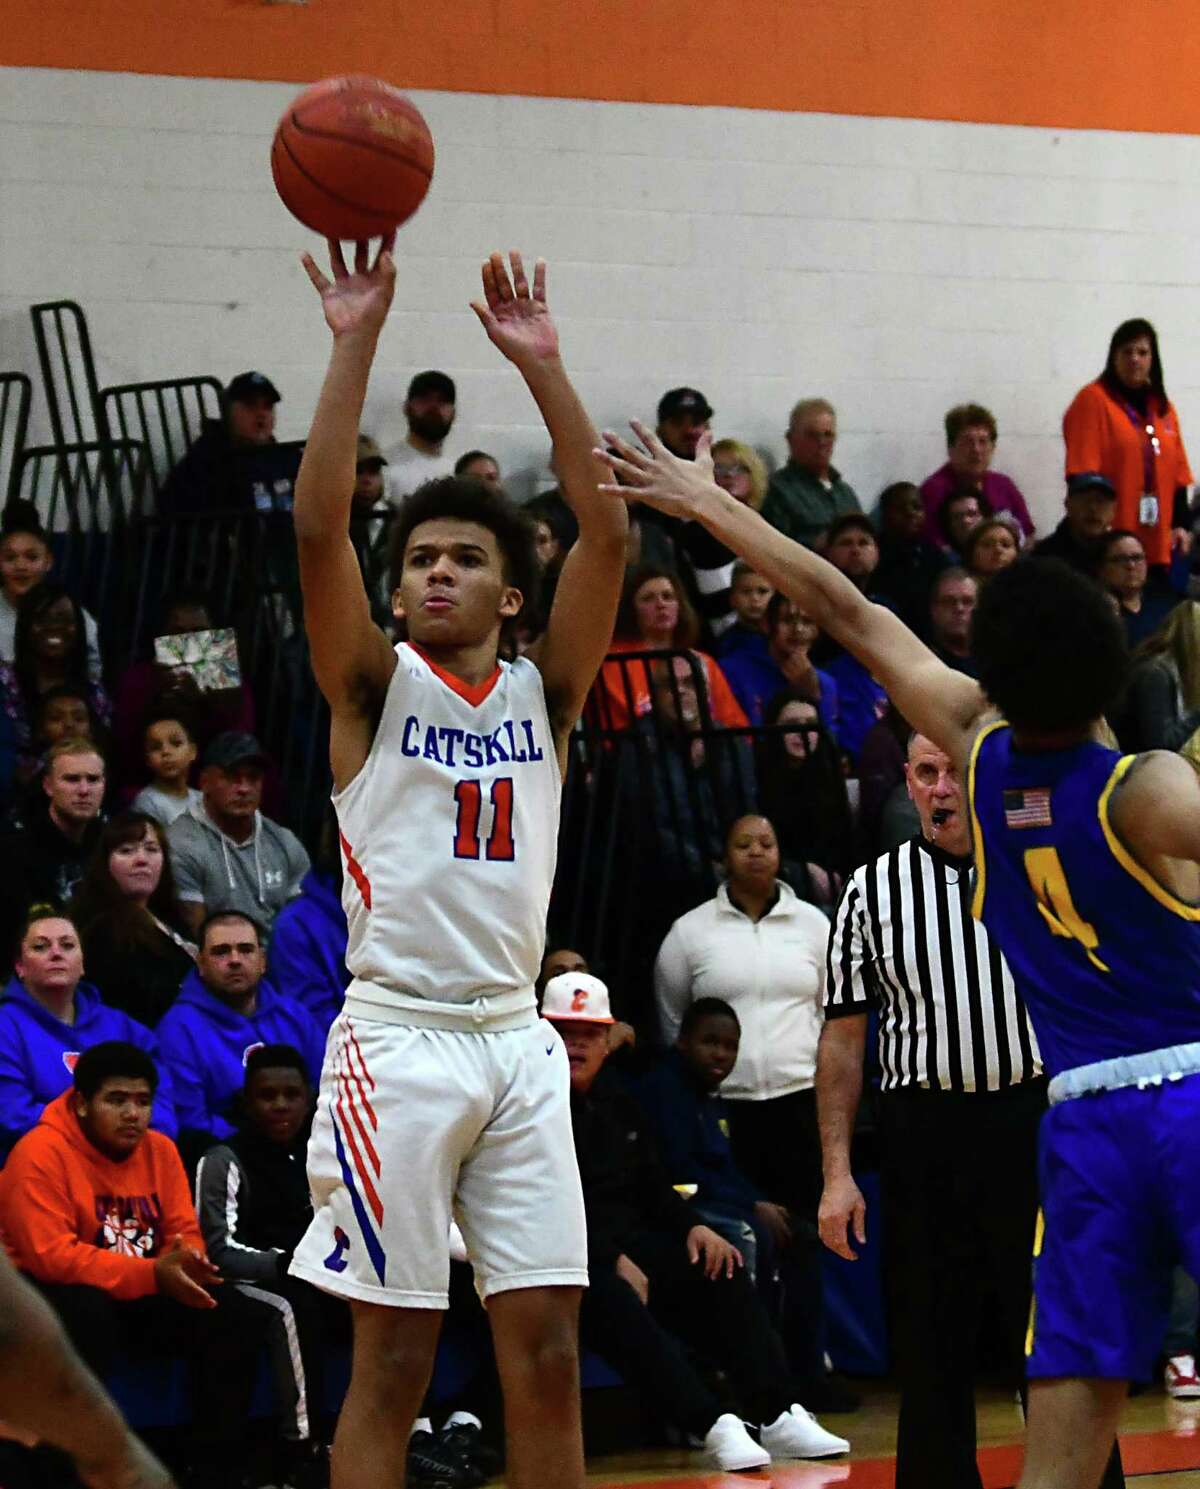 Catskill's Leviticus Johnson puts up a shot against Hudson during a basketball game on Tuesday, Dec. 10, 2019 in Catskill, N.Y. (Lori Van Buren/Times Union)